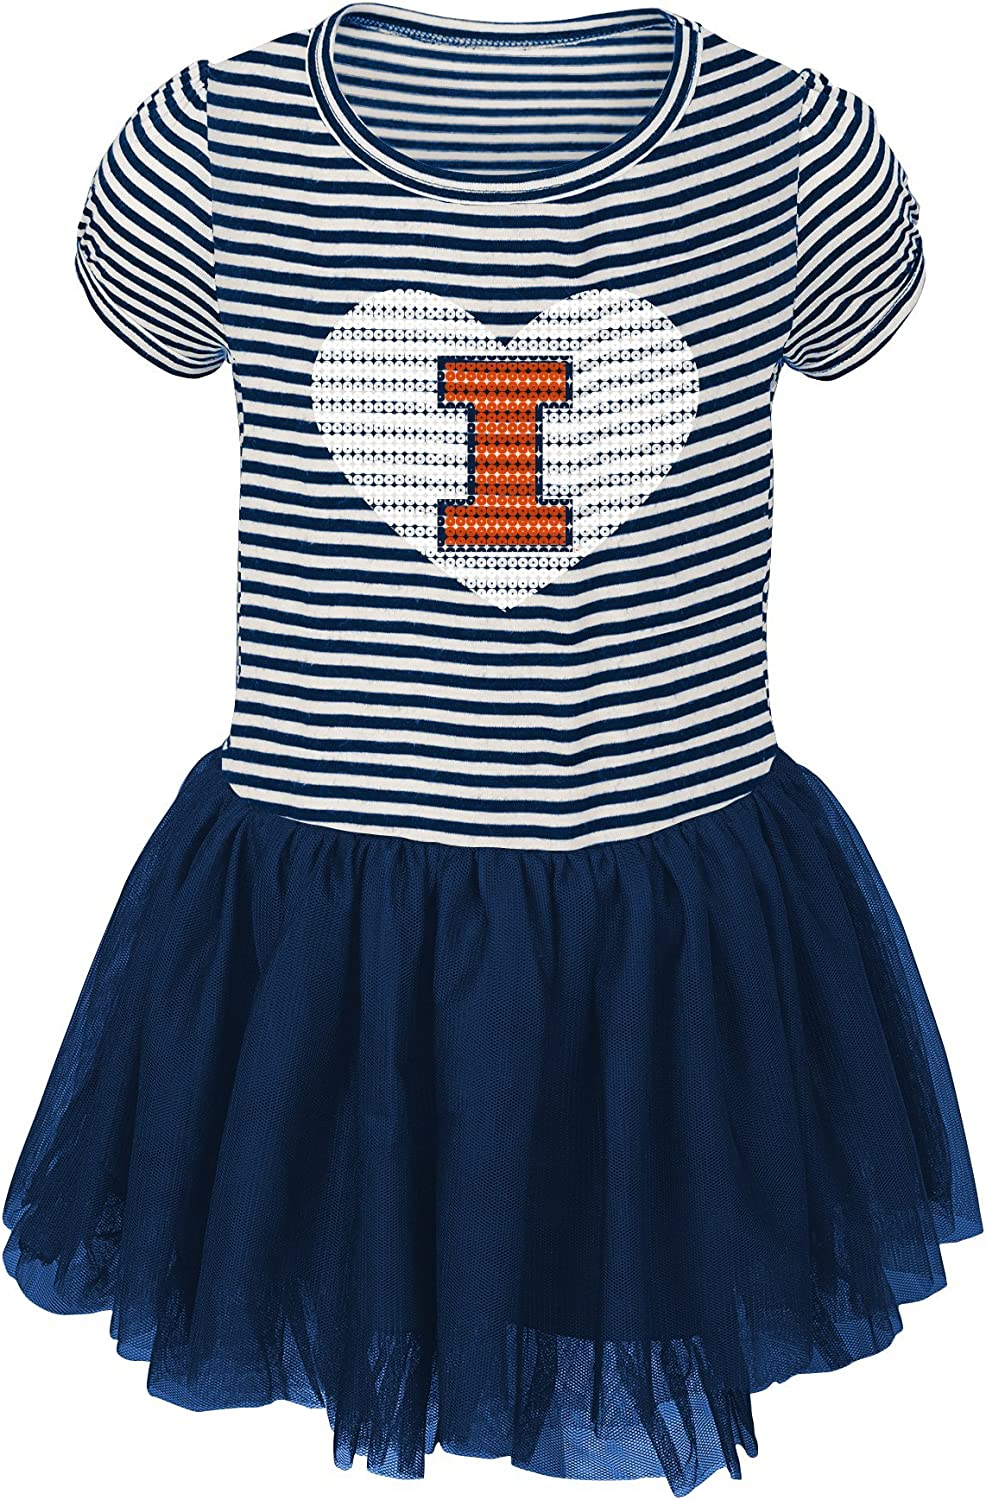 NCAA by Outerstuff NCAA Toddlers Celebration Sequin Tutu Dress